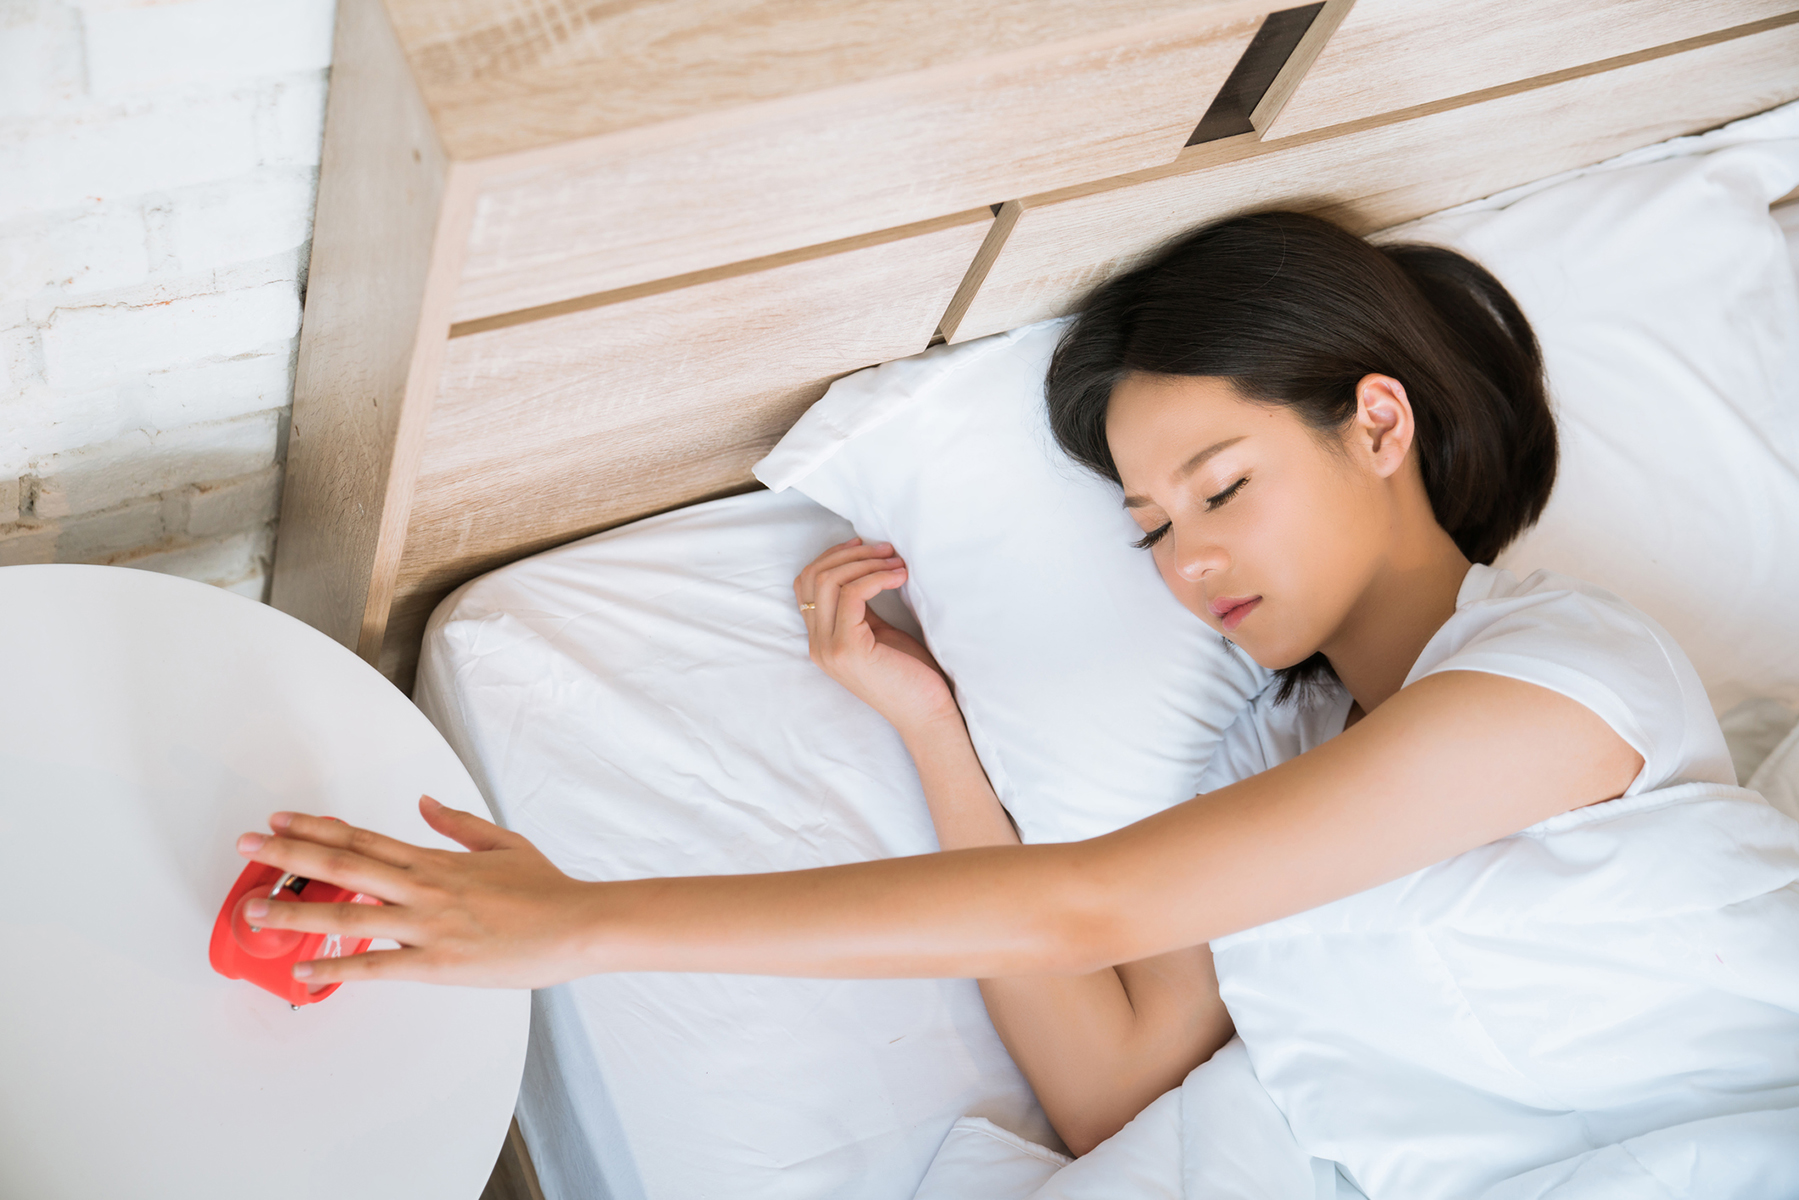 A woman who needs to learn how to stop hitting snooze in the morning.